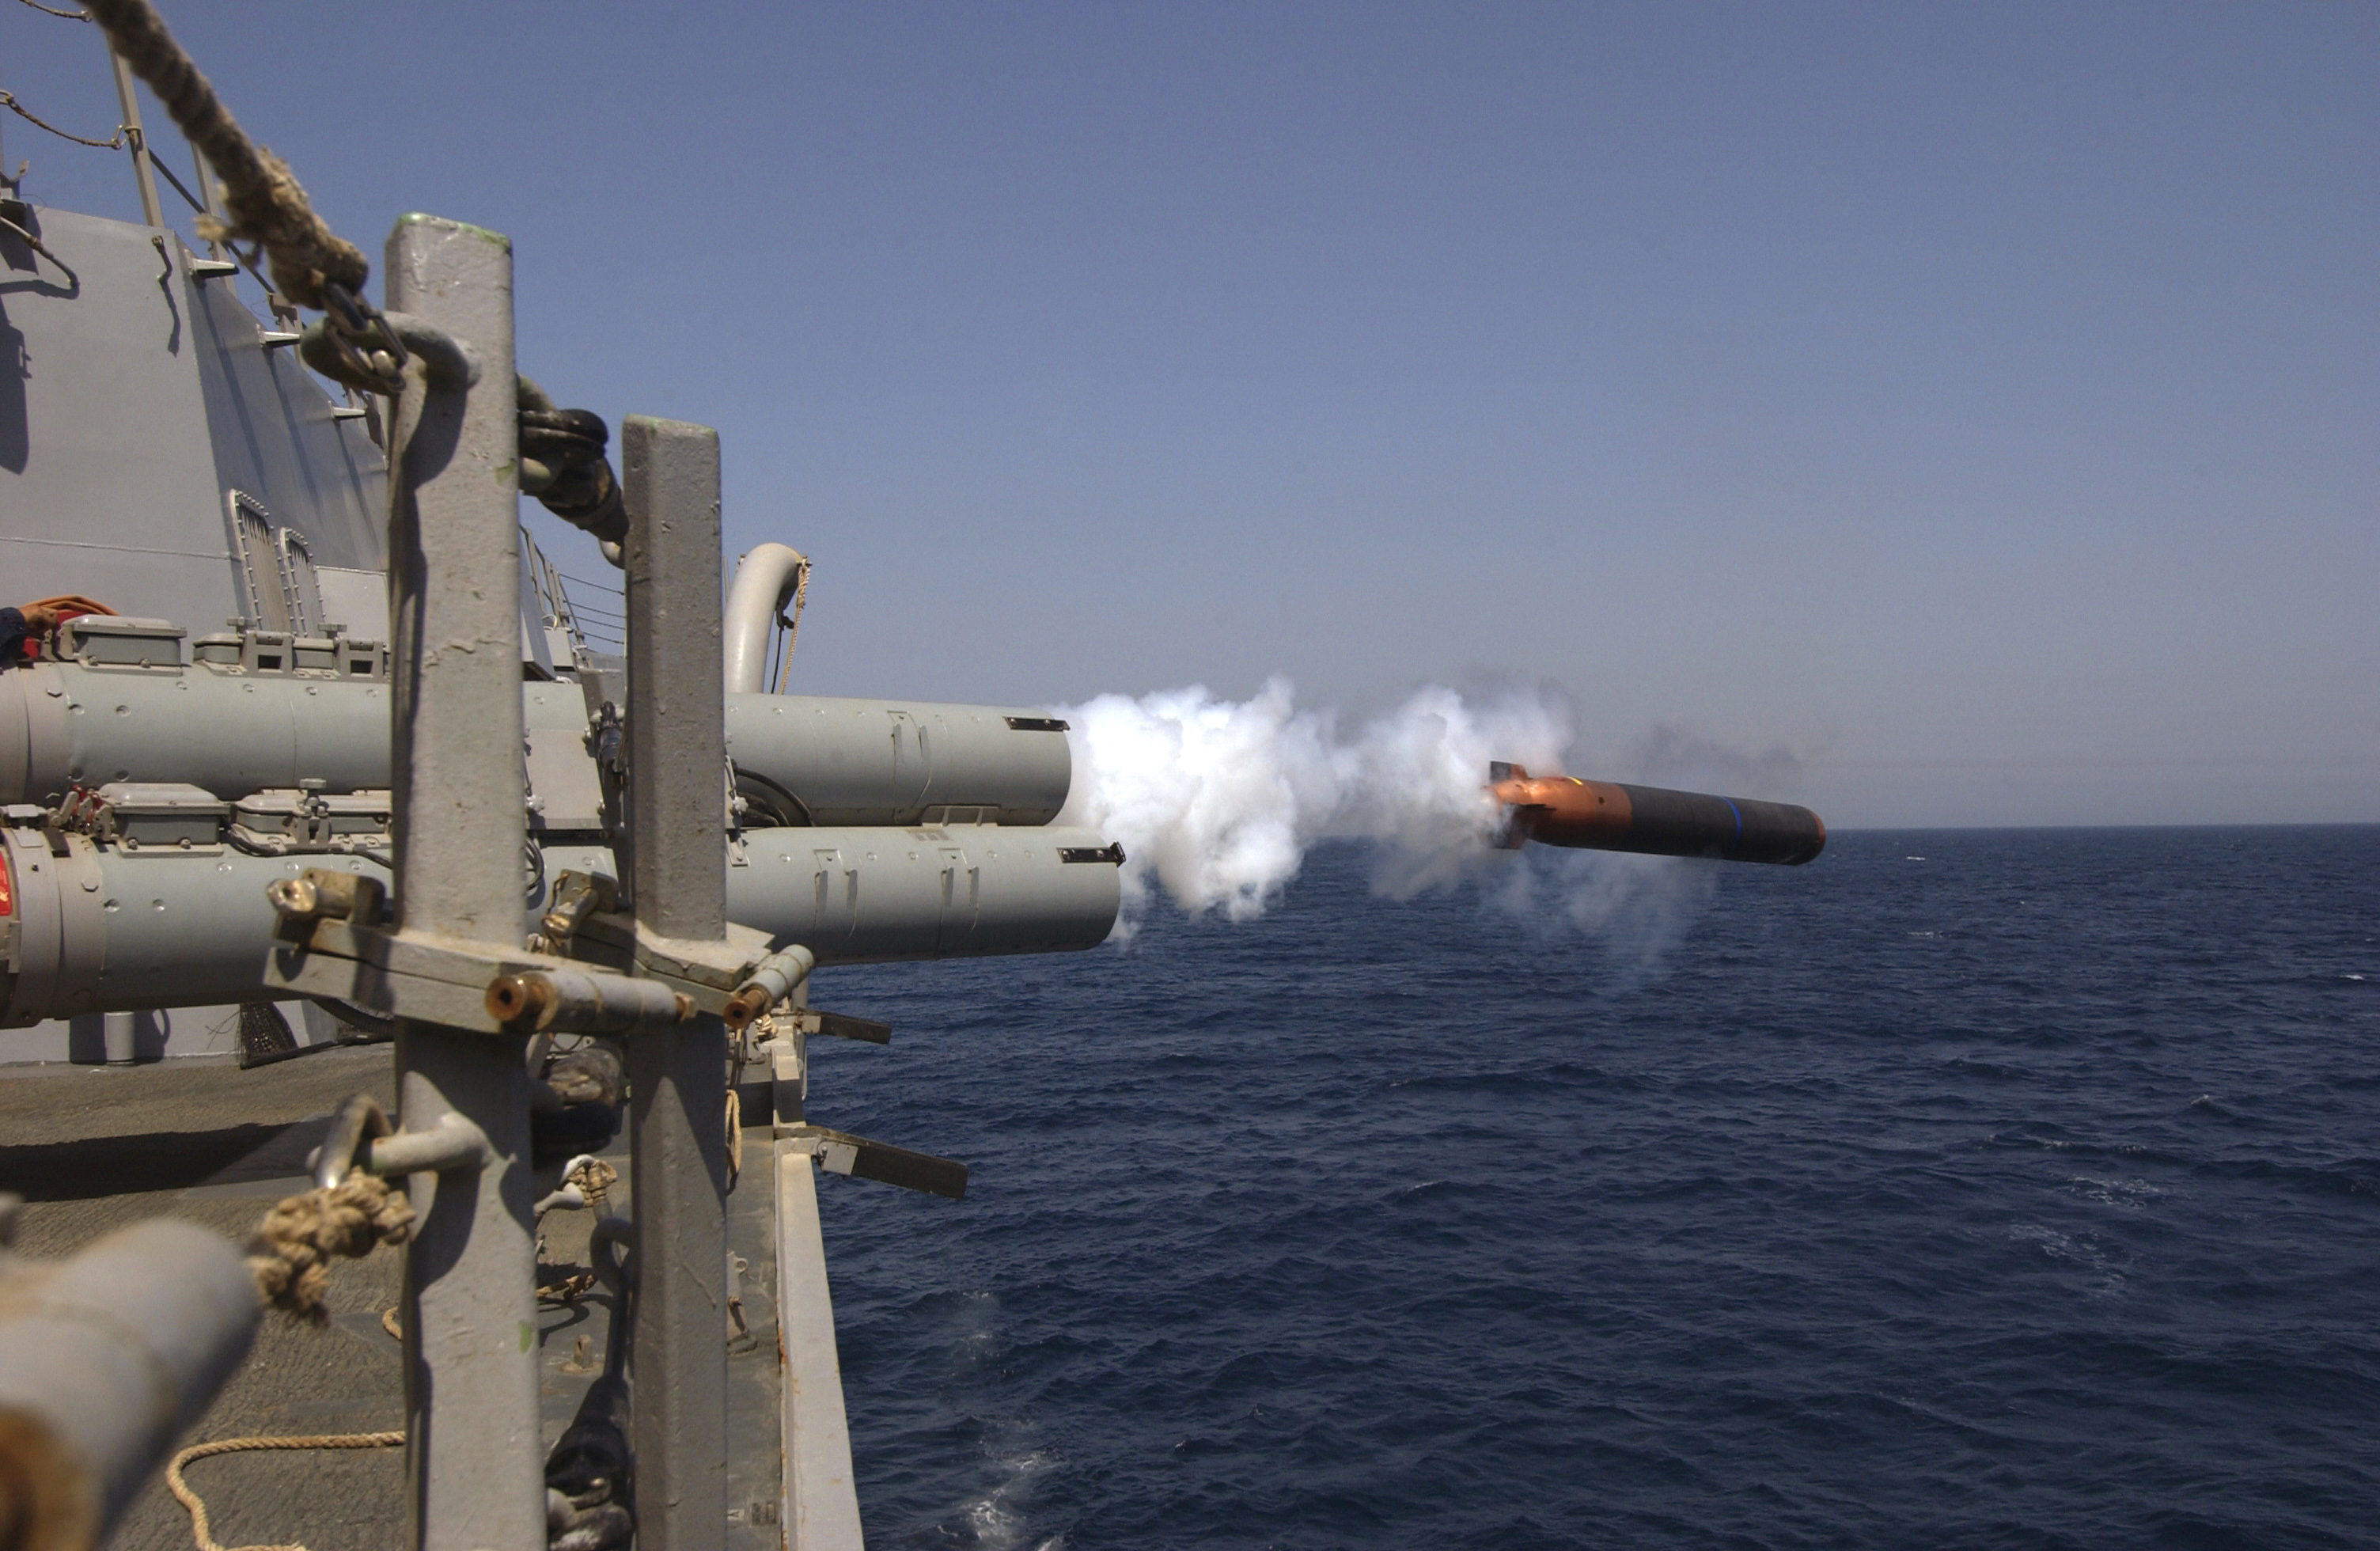 US_Navy_040626-N-5319A-006_An_Anti-Submarine_Warfare_%28ASW%29_MK-50_Torpedo_is_launched_from_guided_missile_destroyer_USS_Bulkeley_%28DDG_84%29.jpg